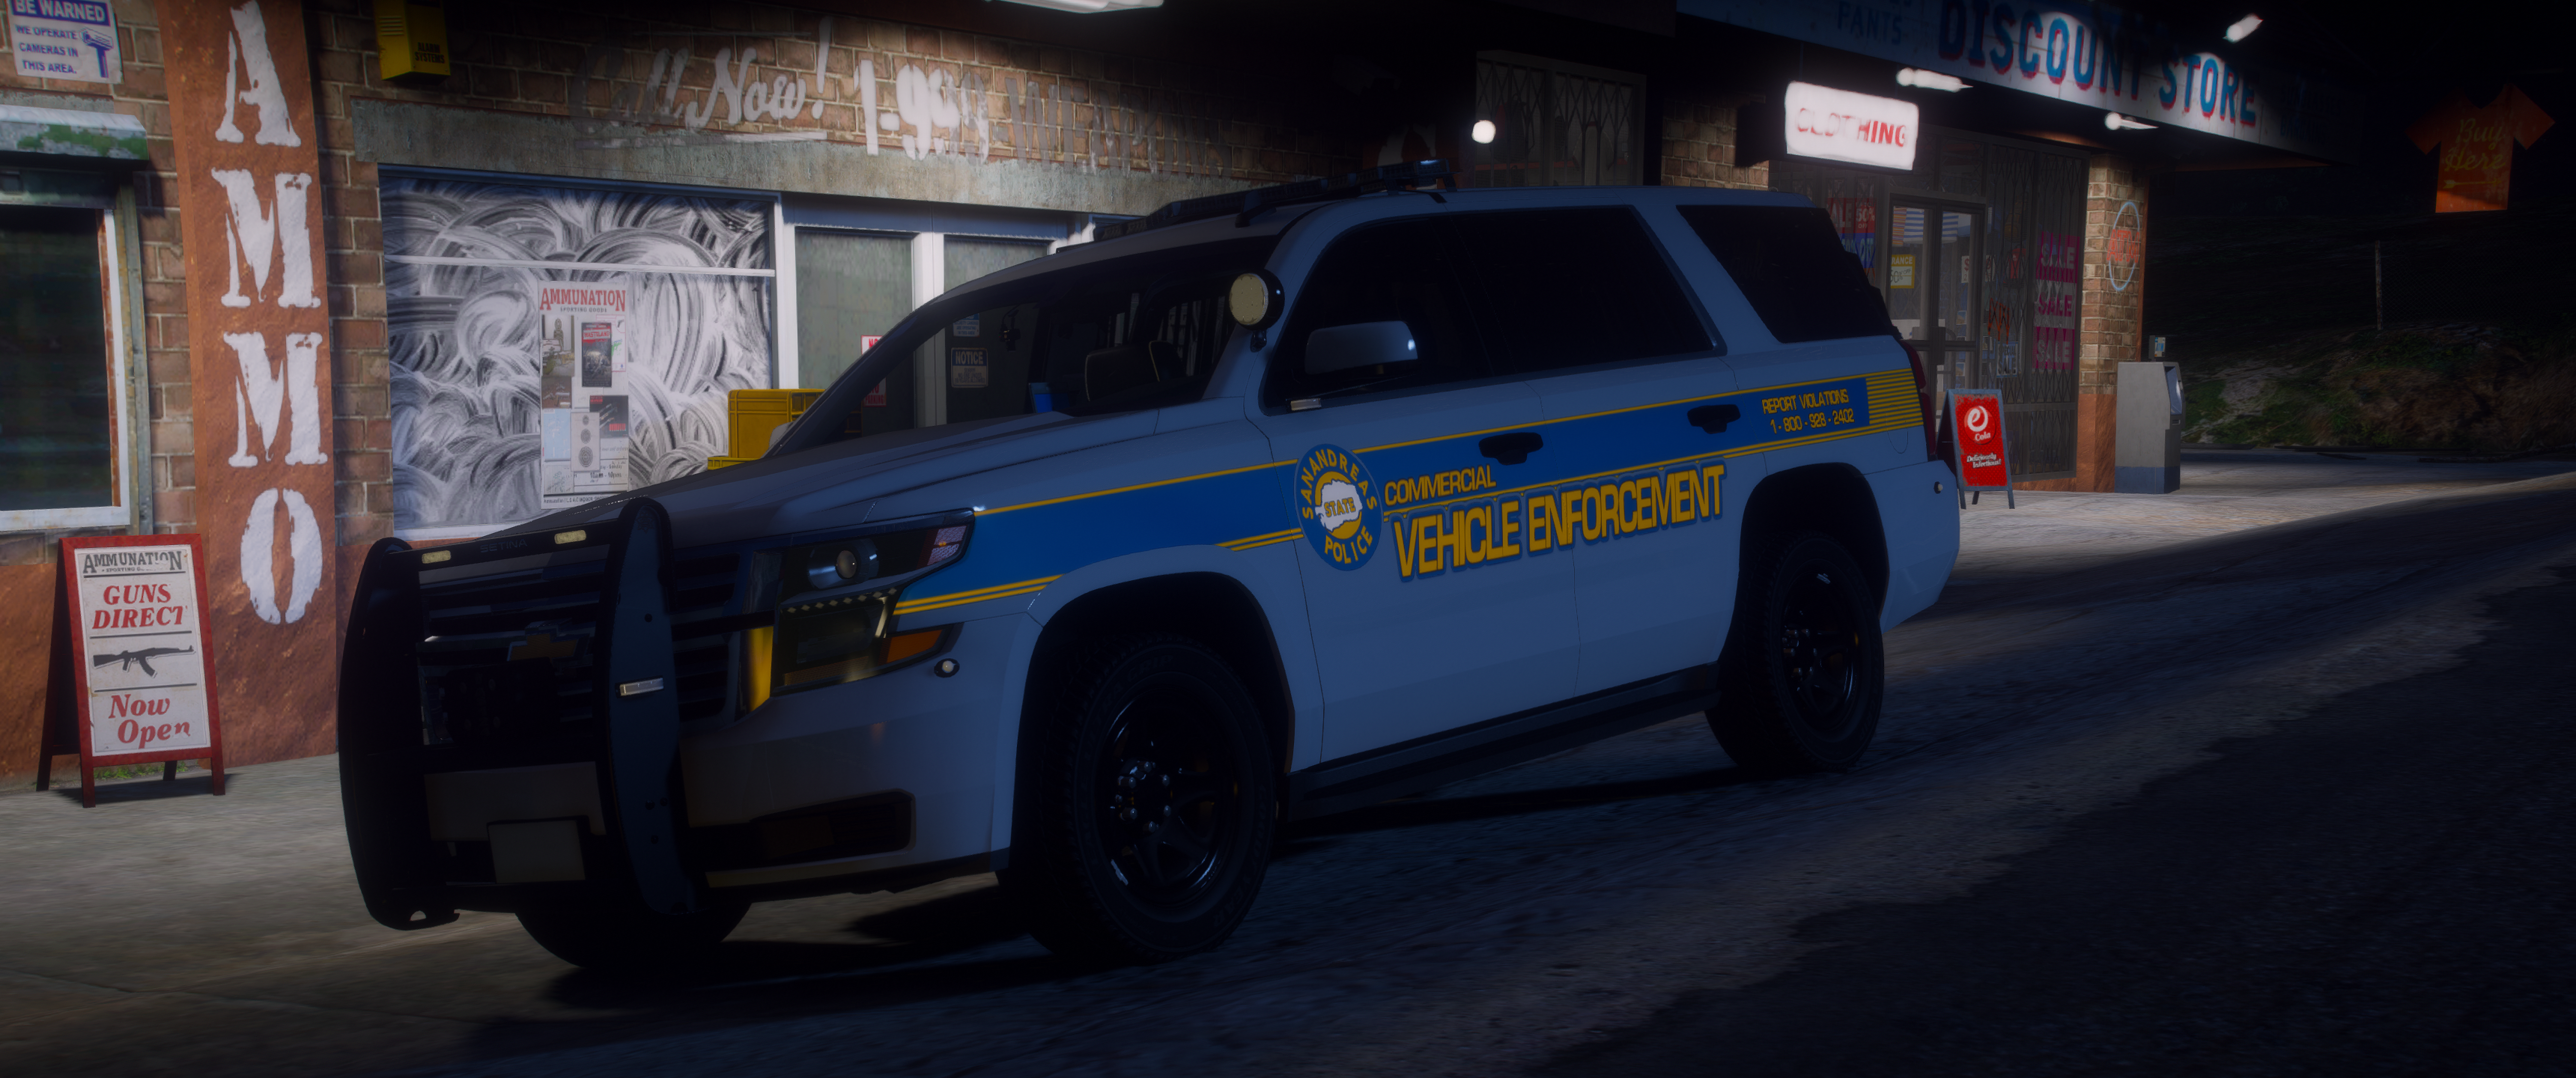 Kentucky State Police Commercial Vehicle Enforcement